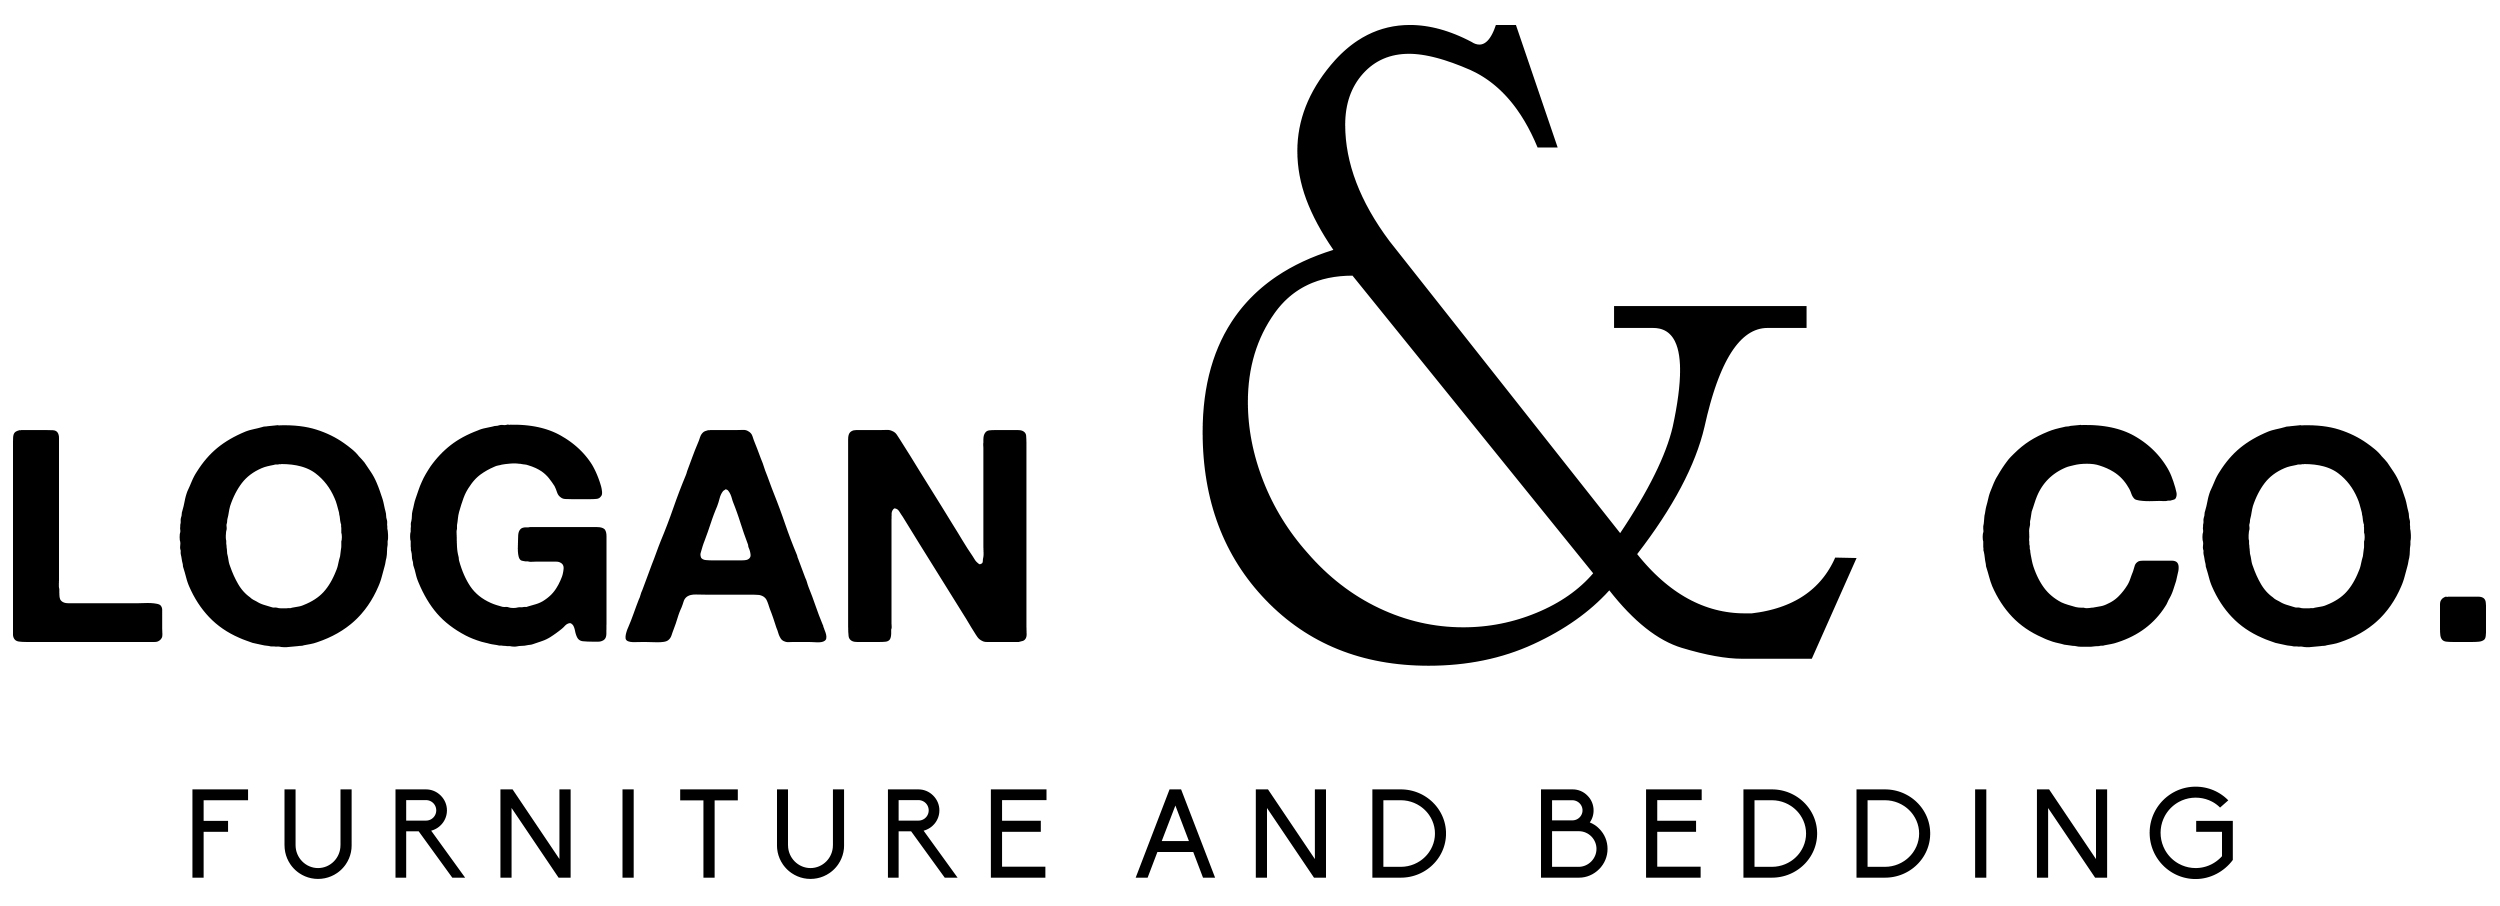 Logan & Co Furniture and Bedding.jpg